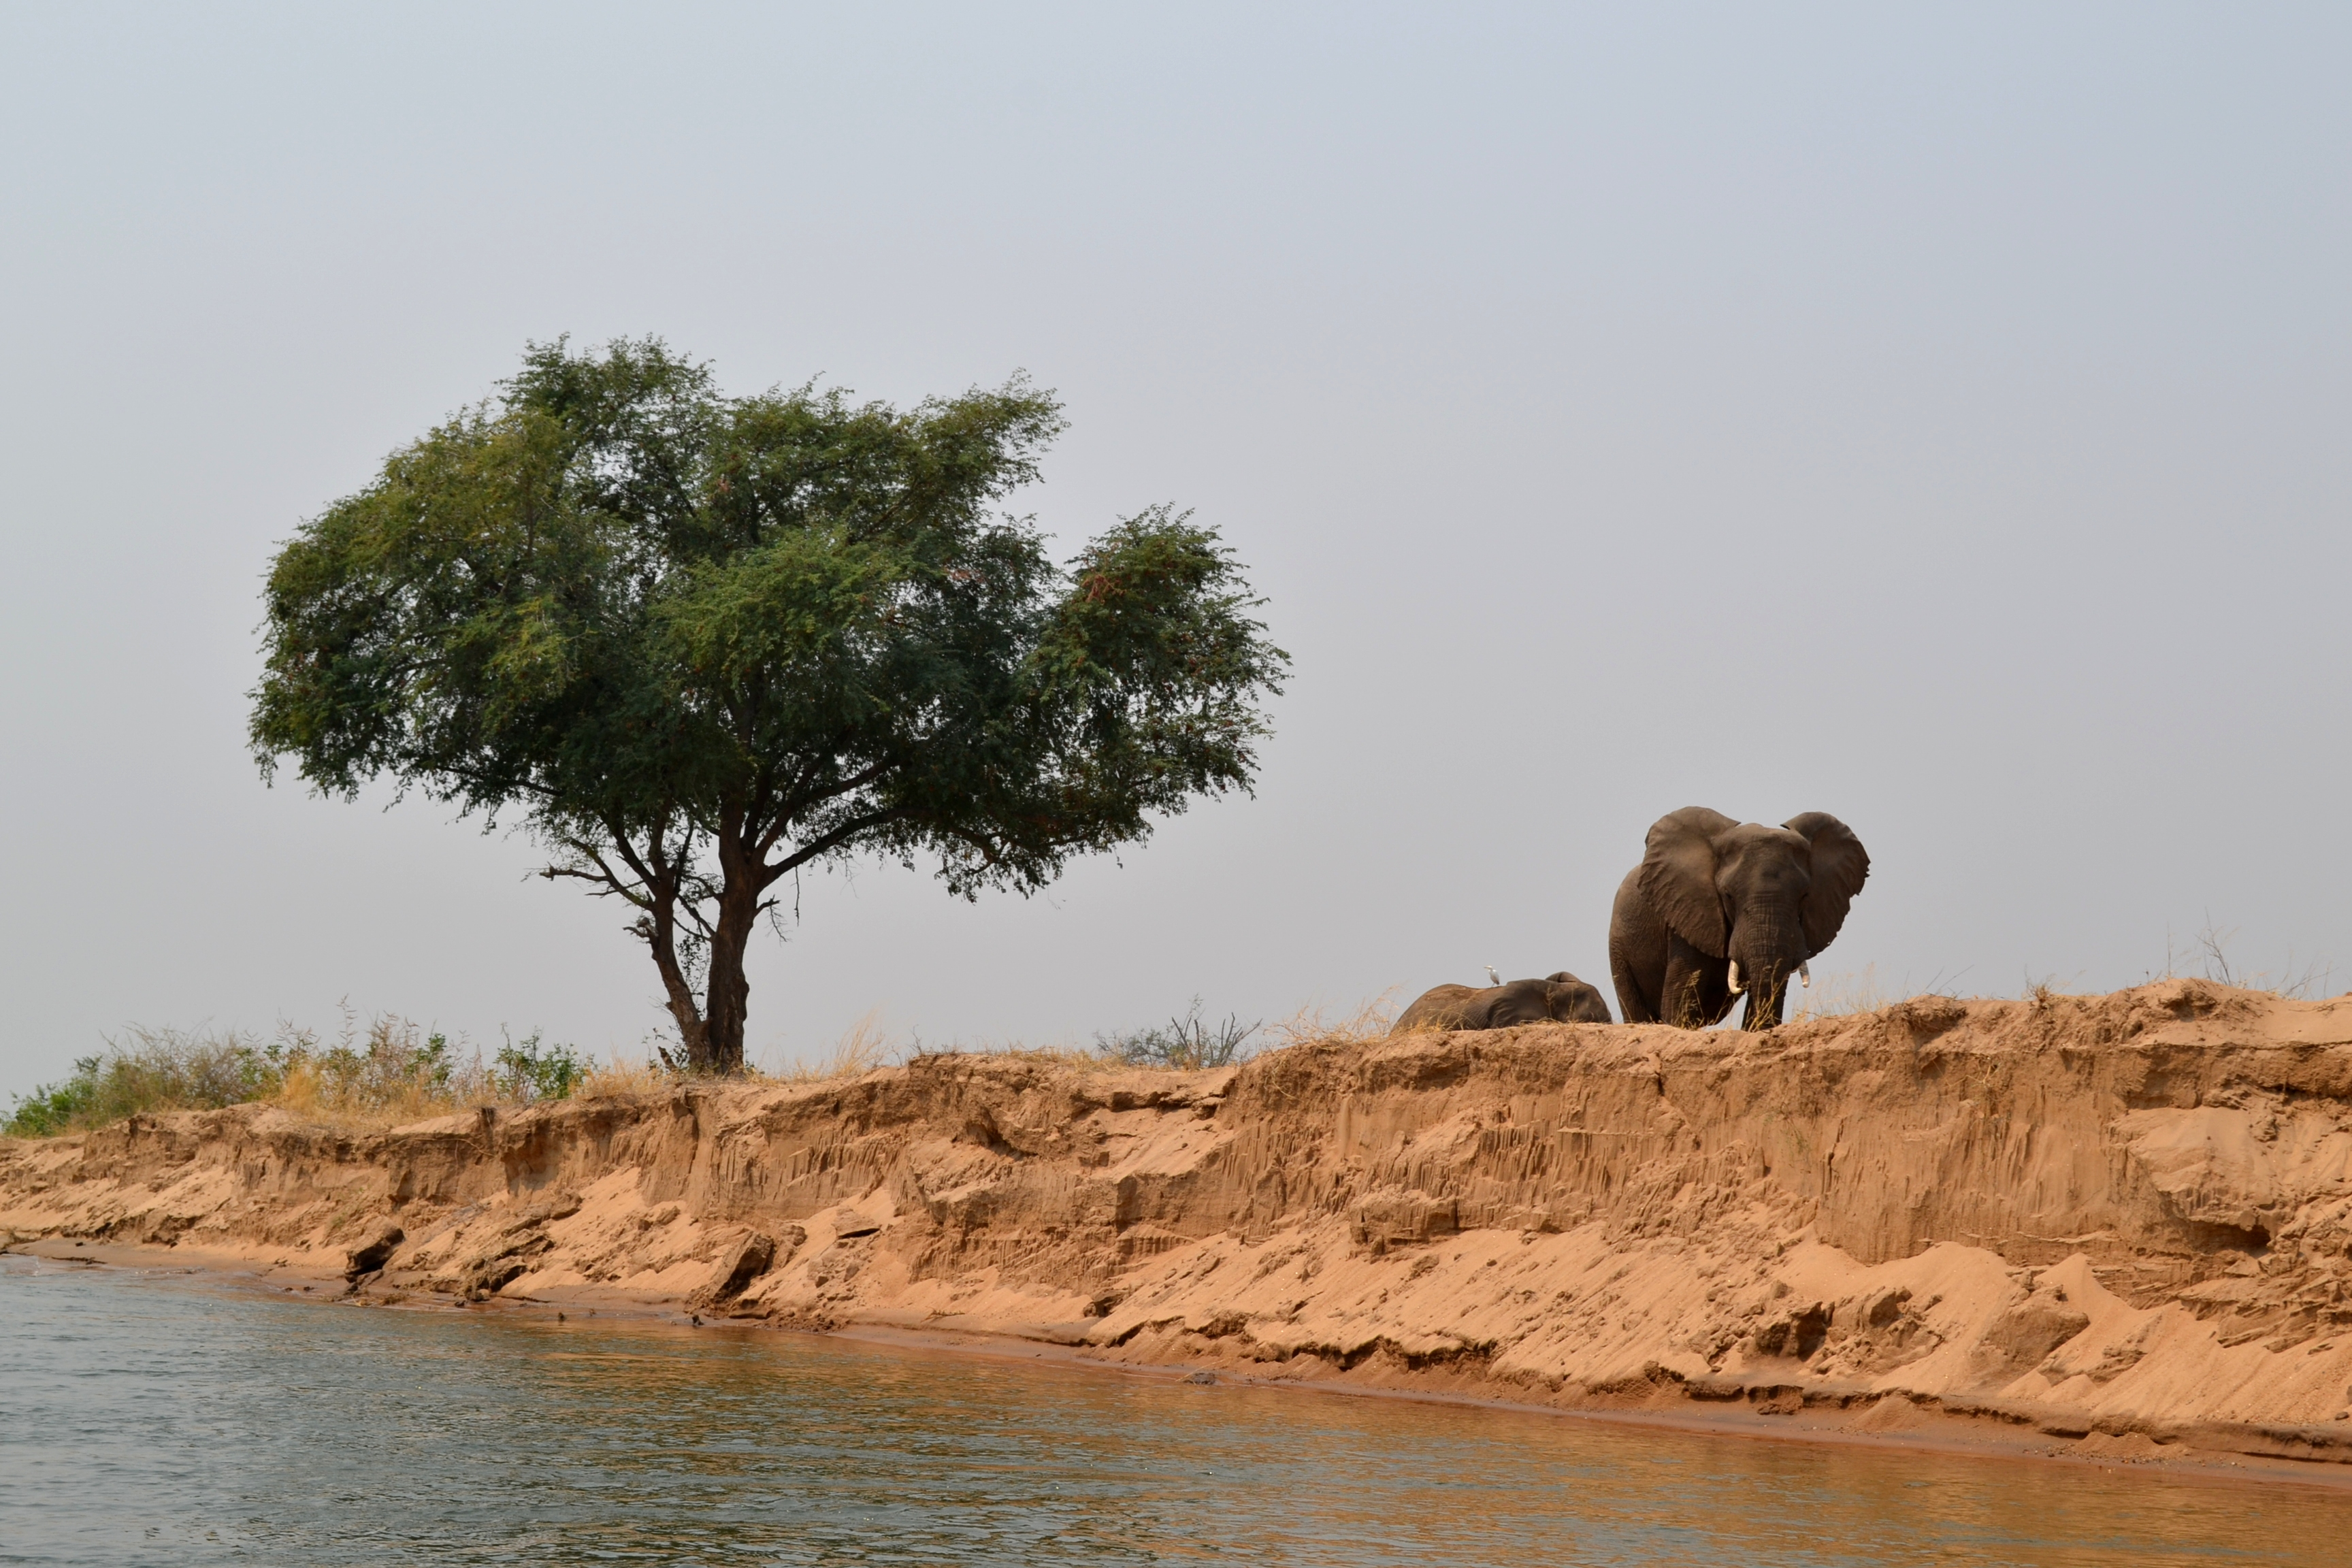 Elephants on the Zimbabwean river bank